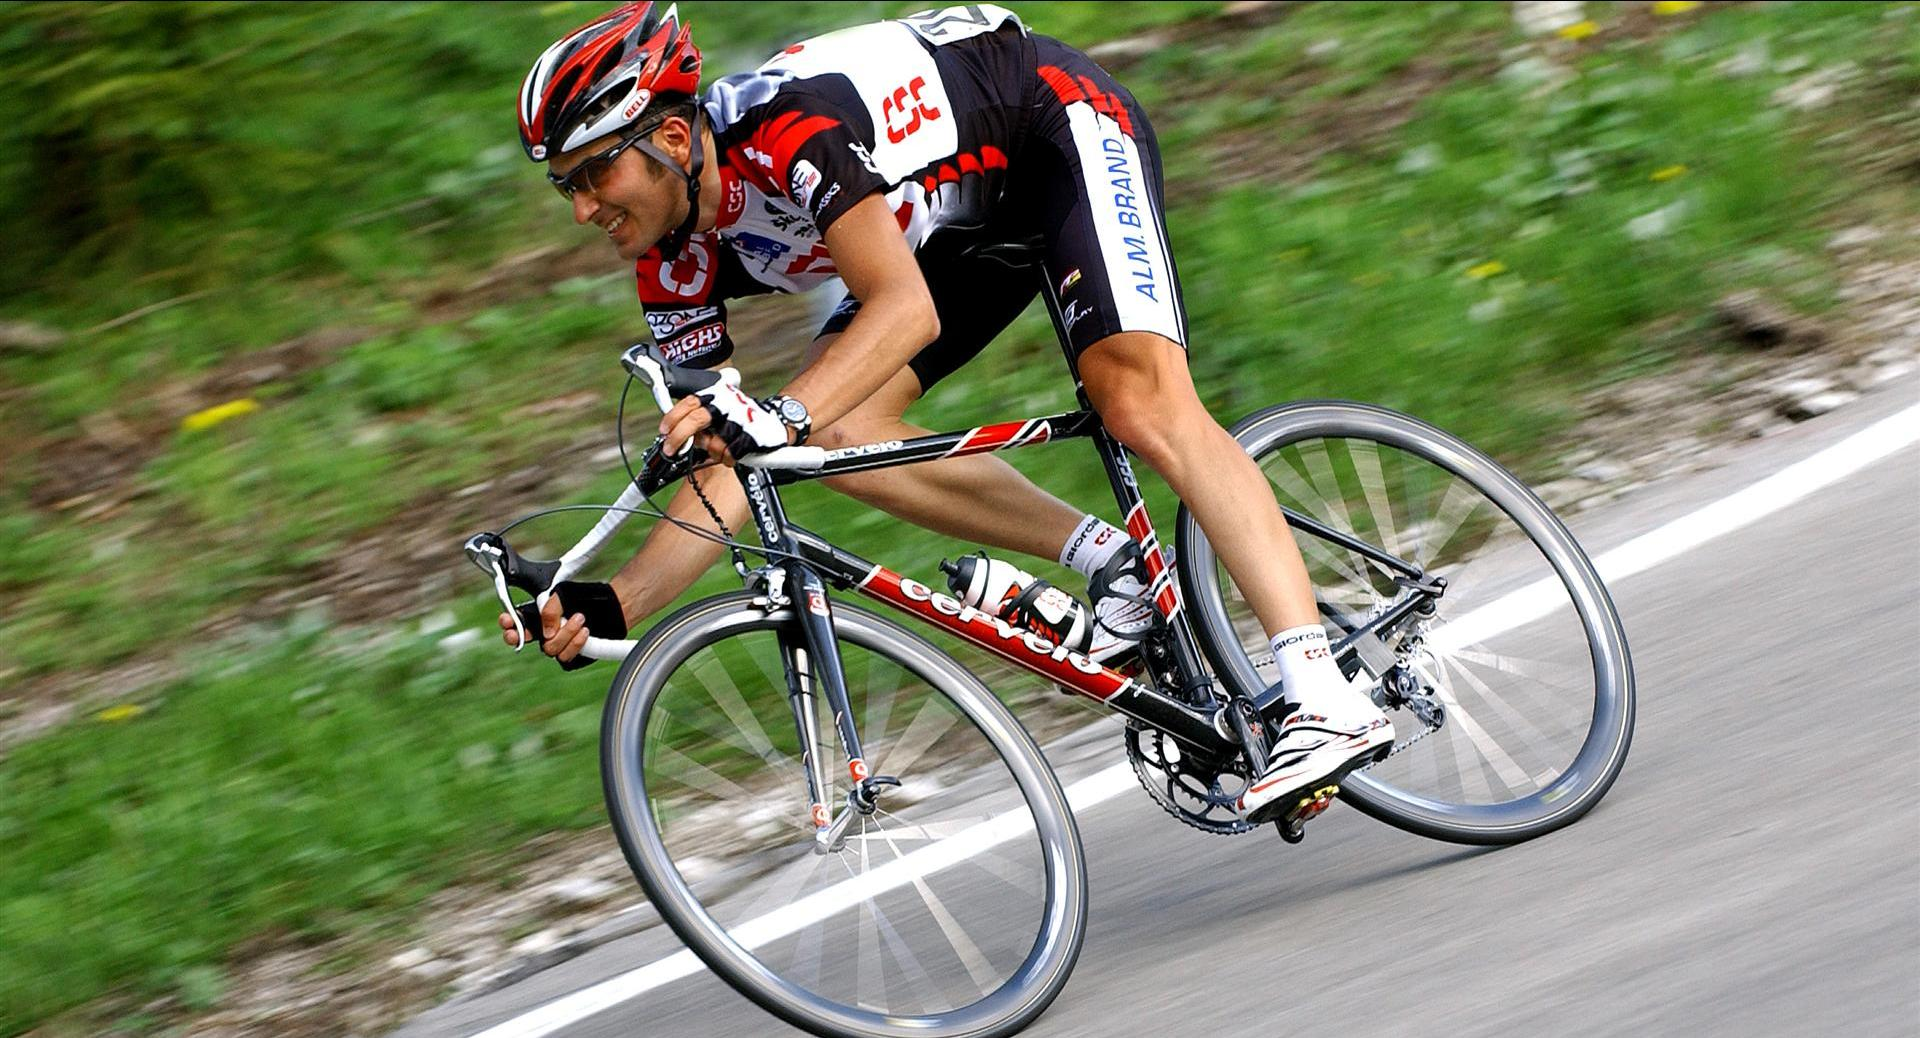 Bicycle Racing Wallpaper